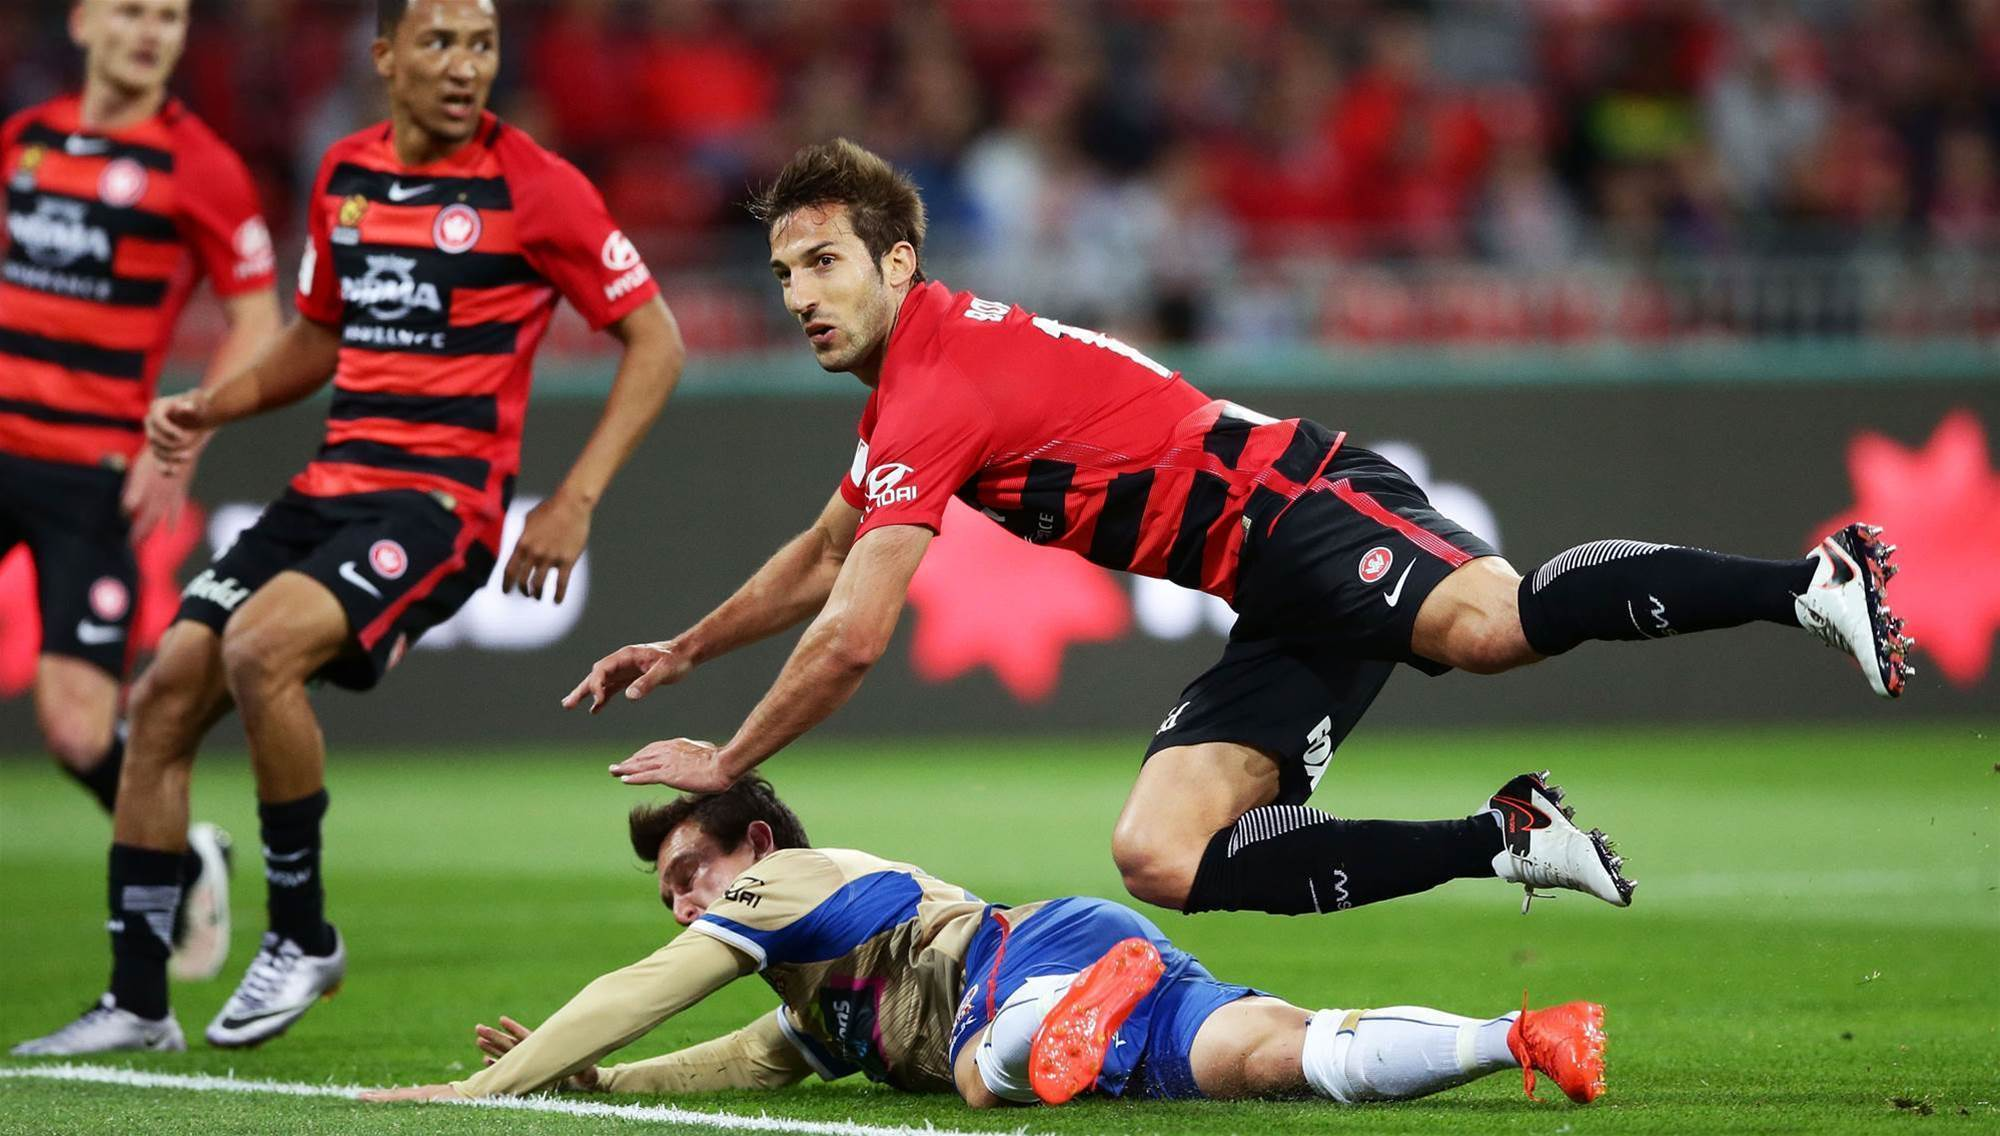 Defender latest to exit Wanderers